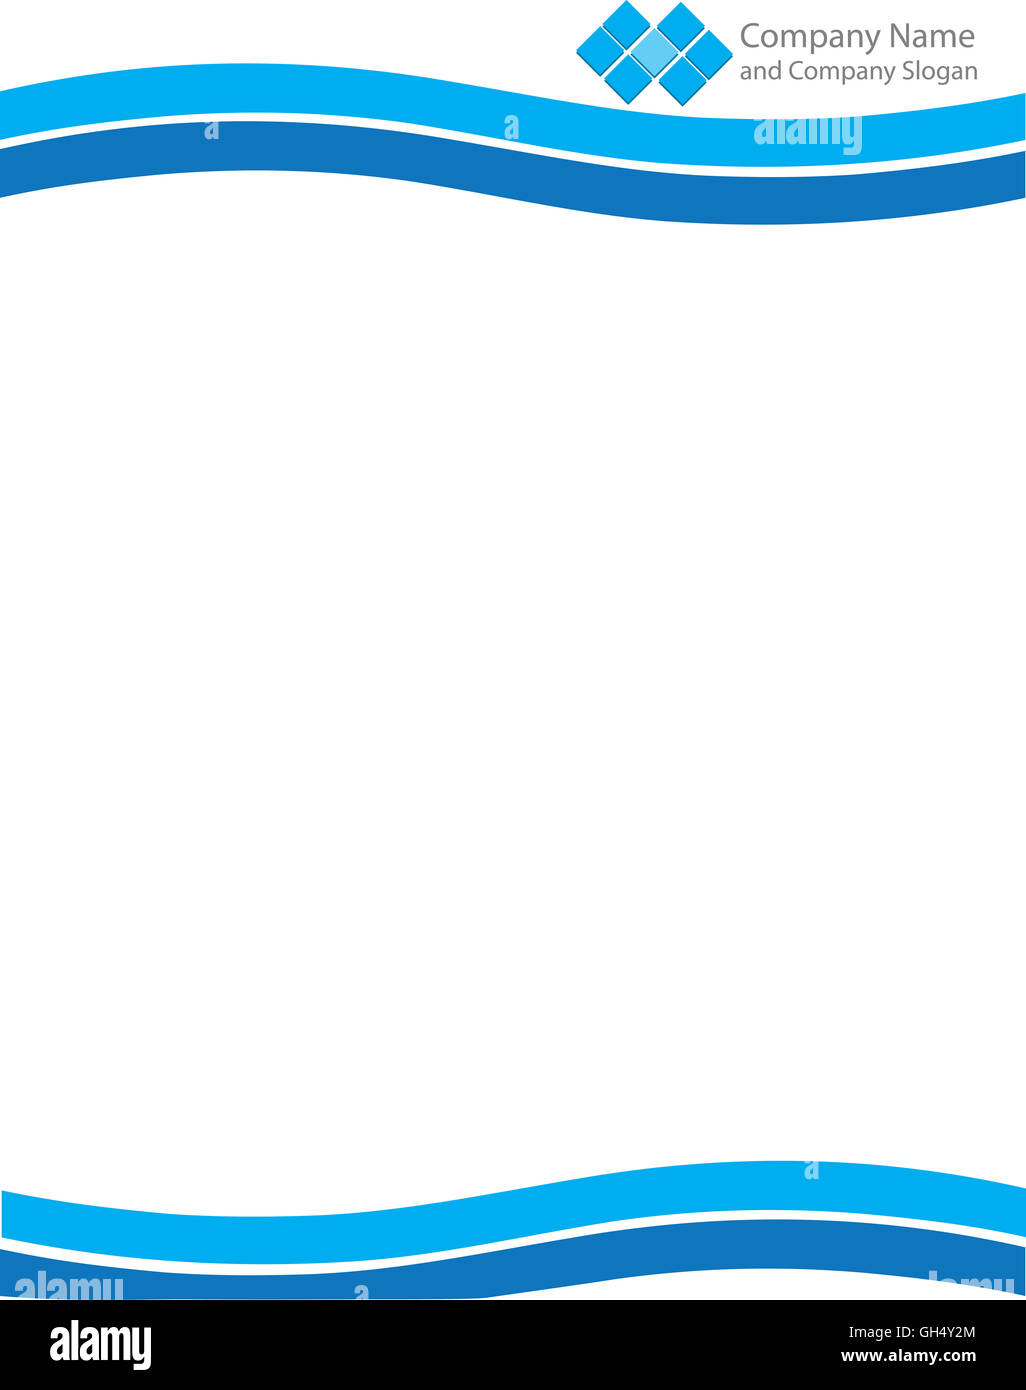 Blue Wave Letterhead Template with Logo - Stock Image